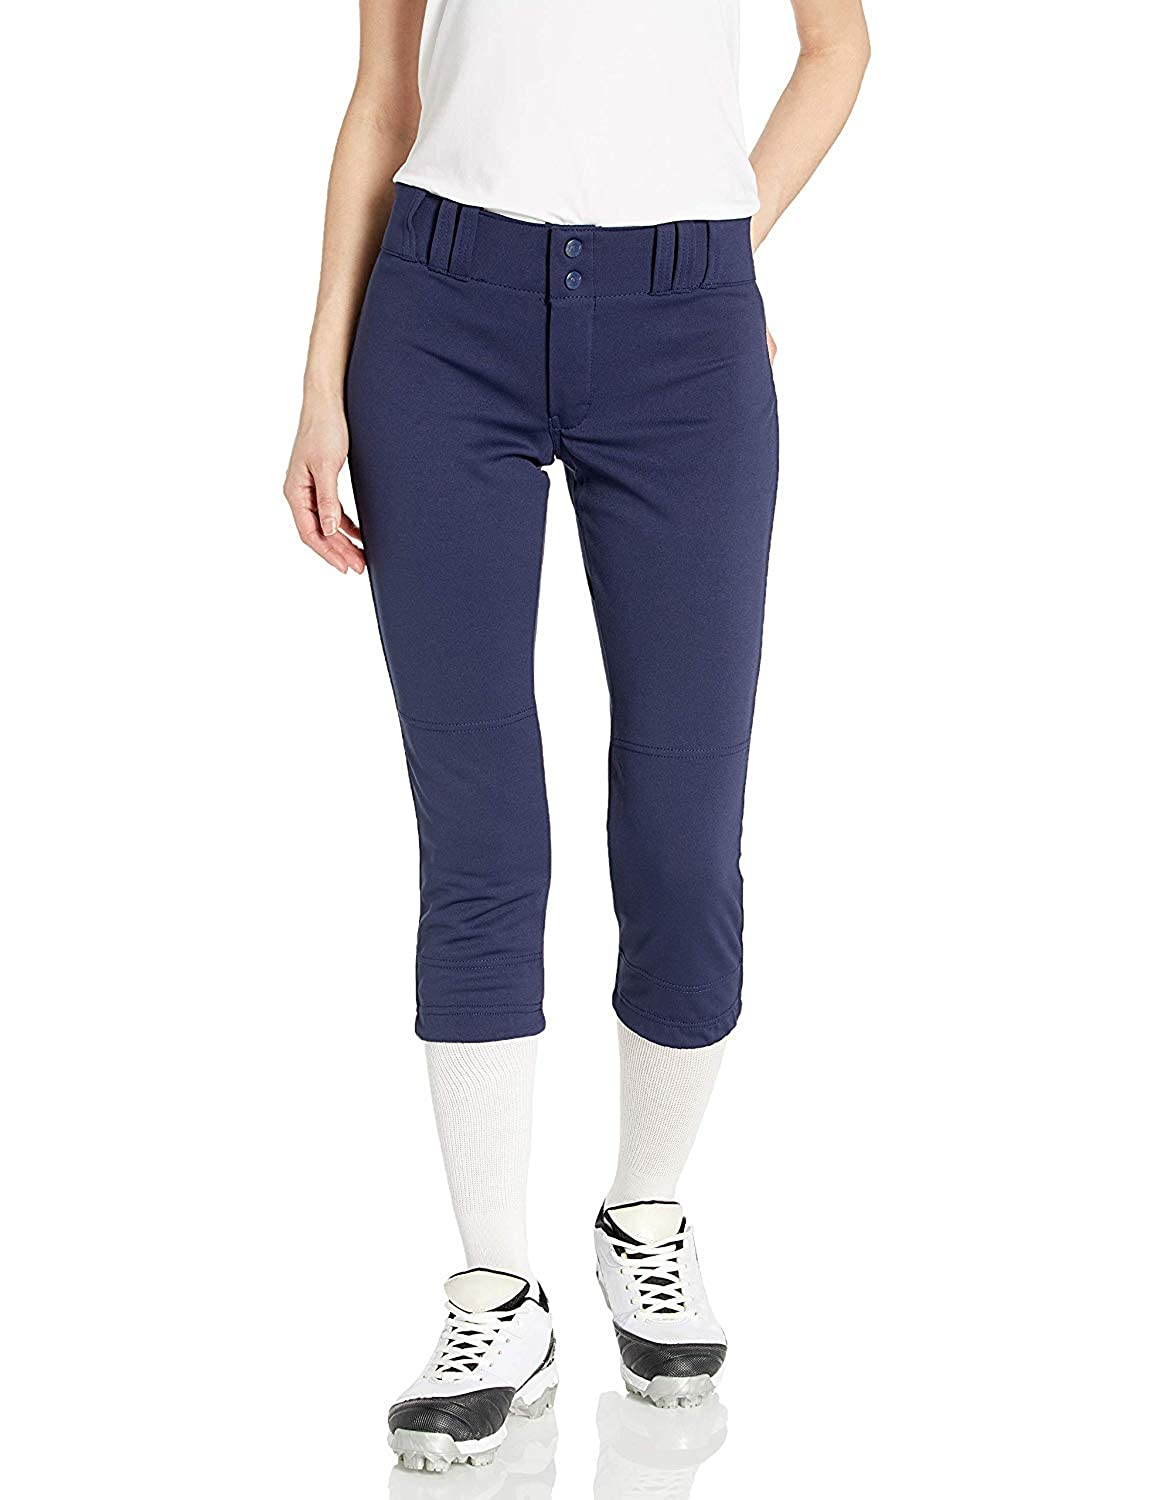 Small CHAMPRO Unisex-Youth Tournament Low Rise Fastpitch Softball Pant Navy